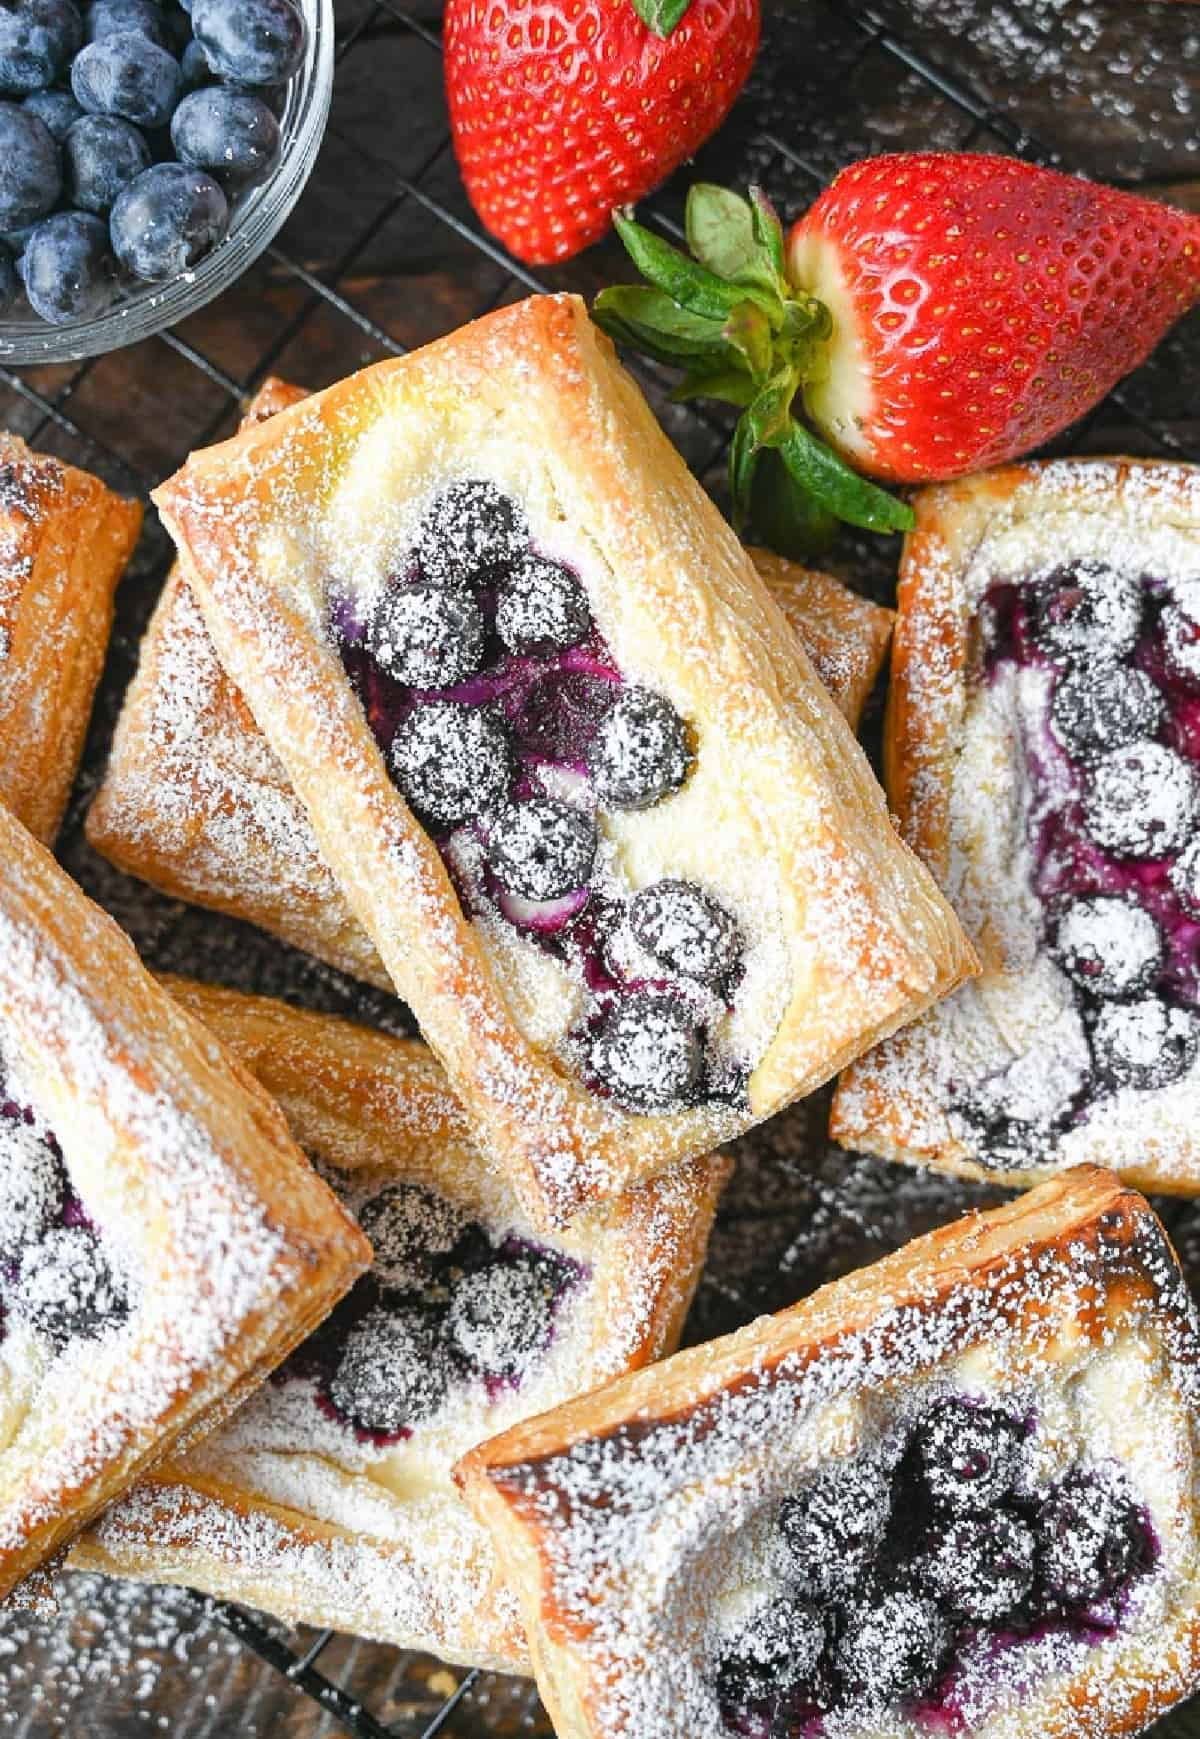 A pile of blueberry cream cheese pastries with a side of strawberries.